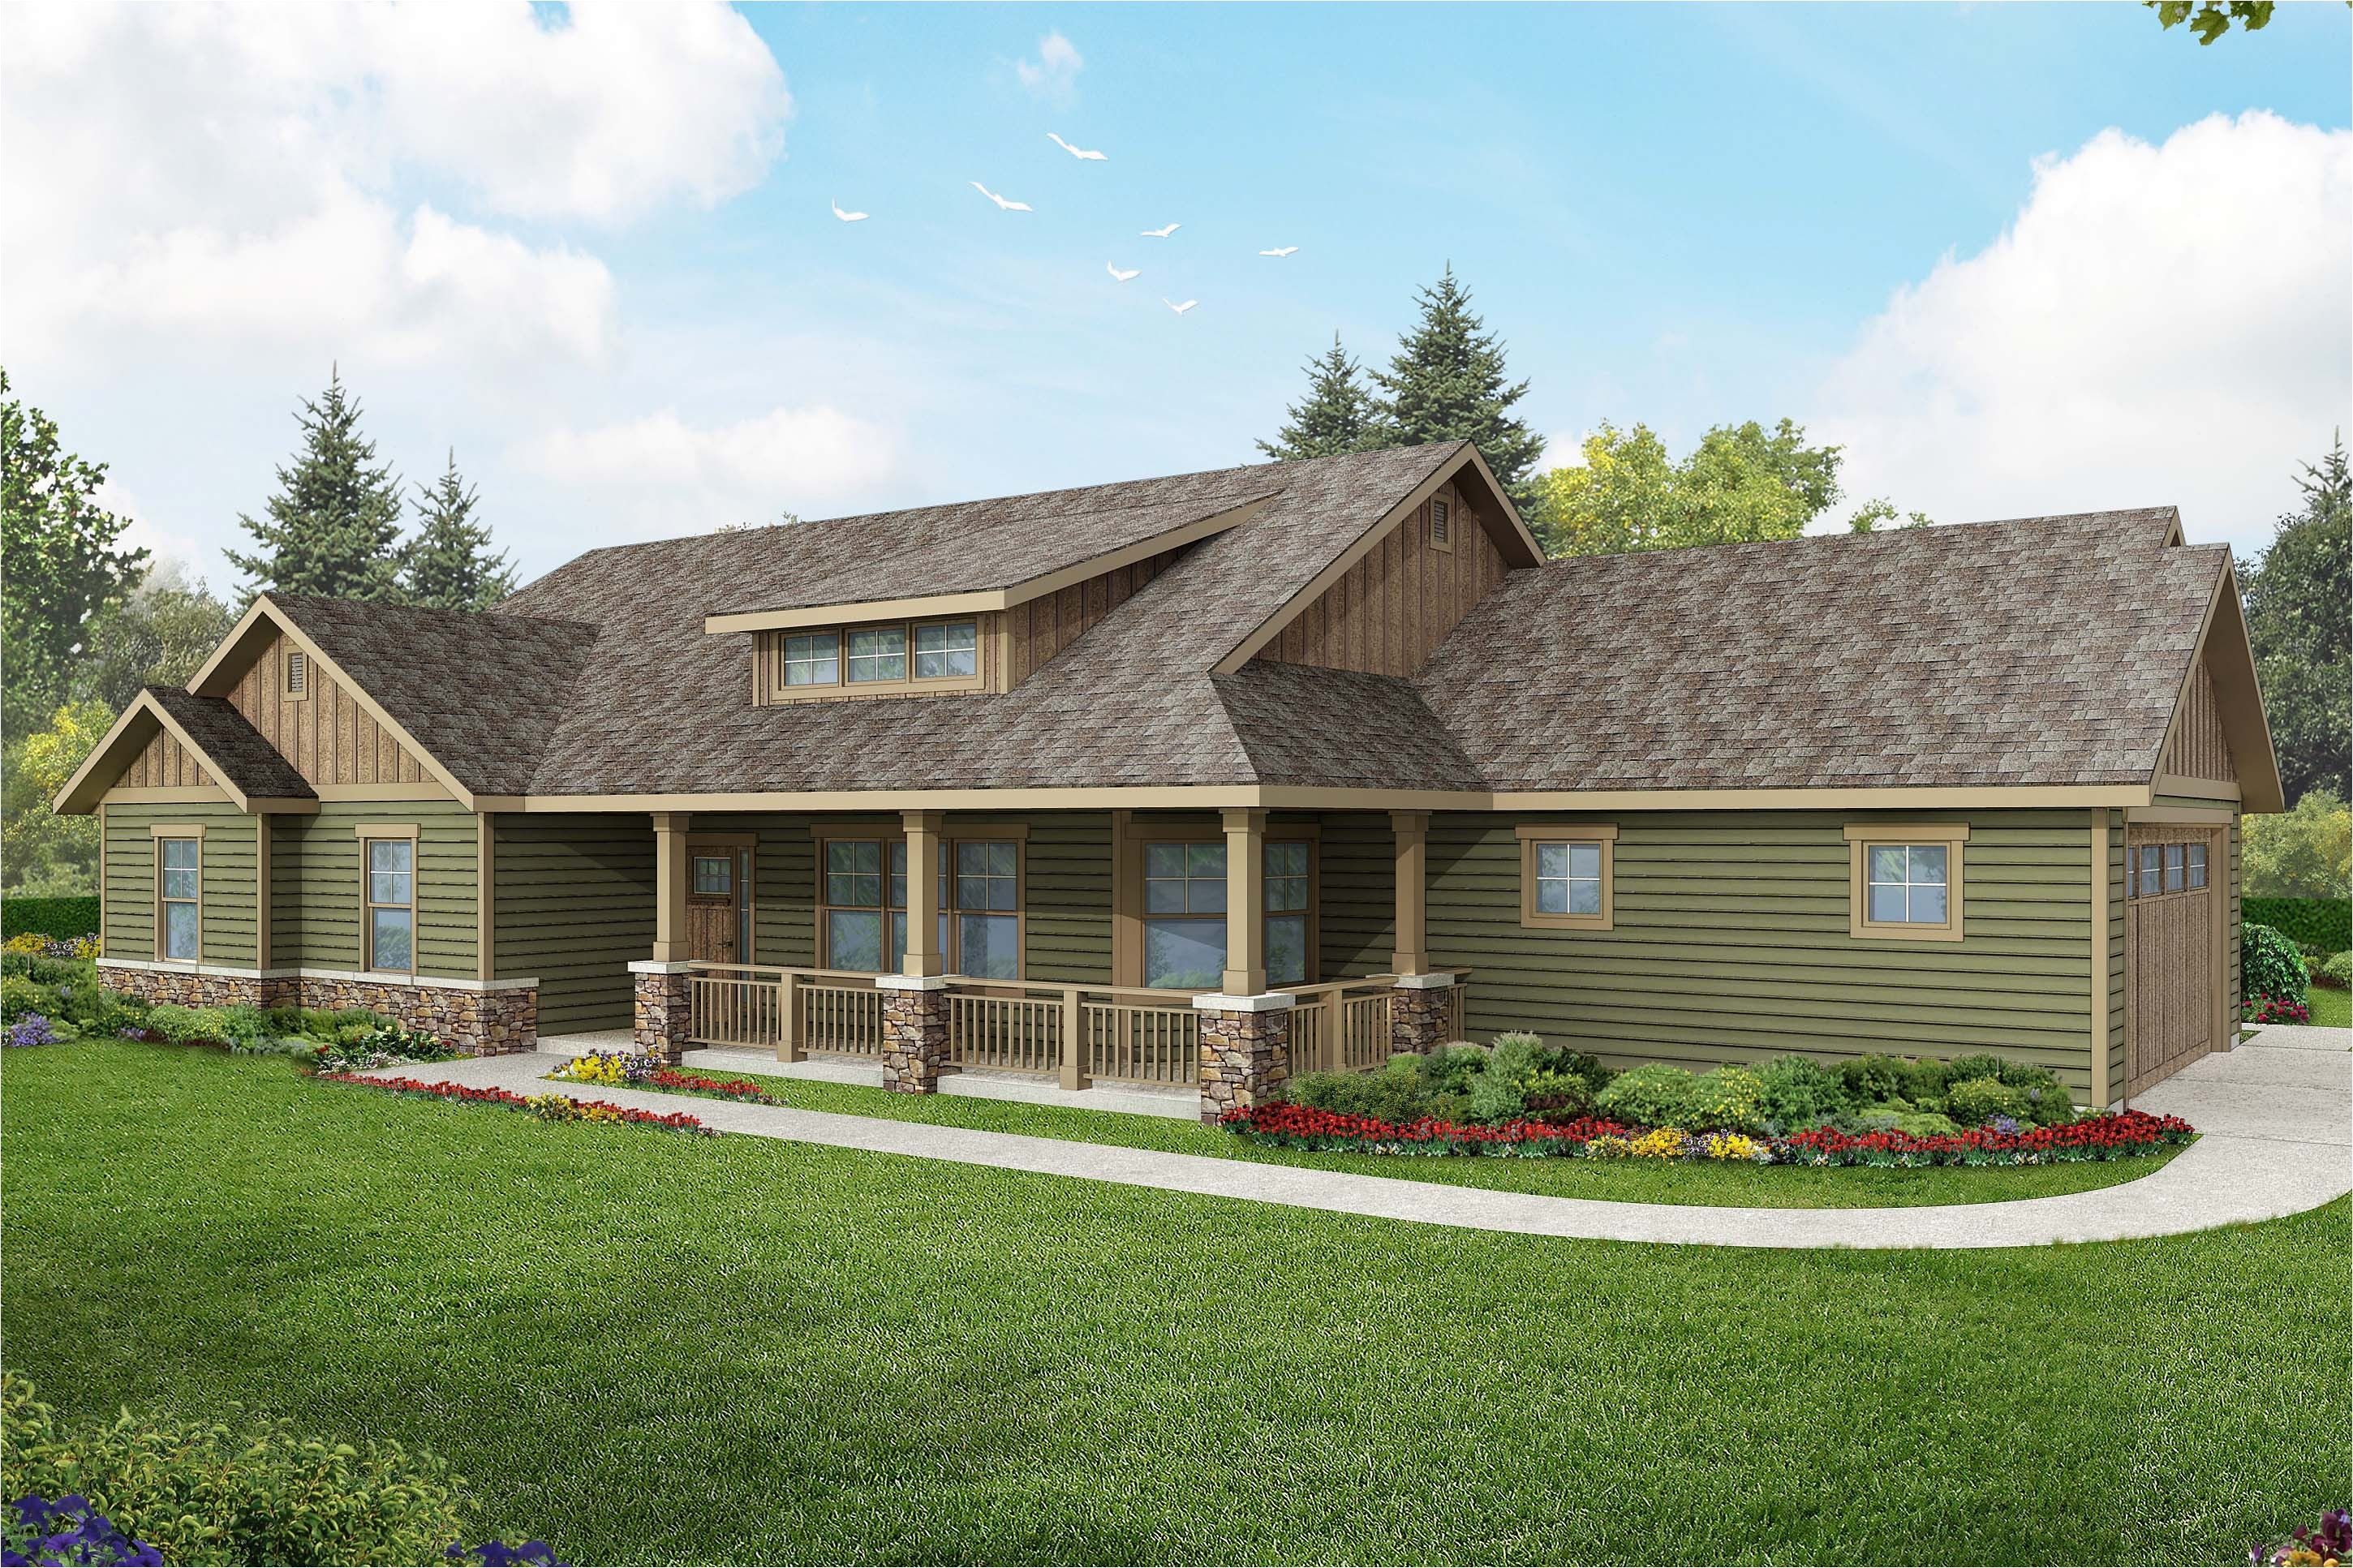 Raised Ranch House Plans Photos Raised Ranch House Plans Getting the Right Choice Of